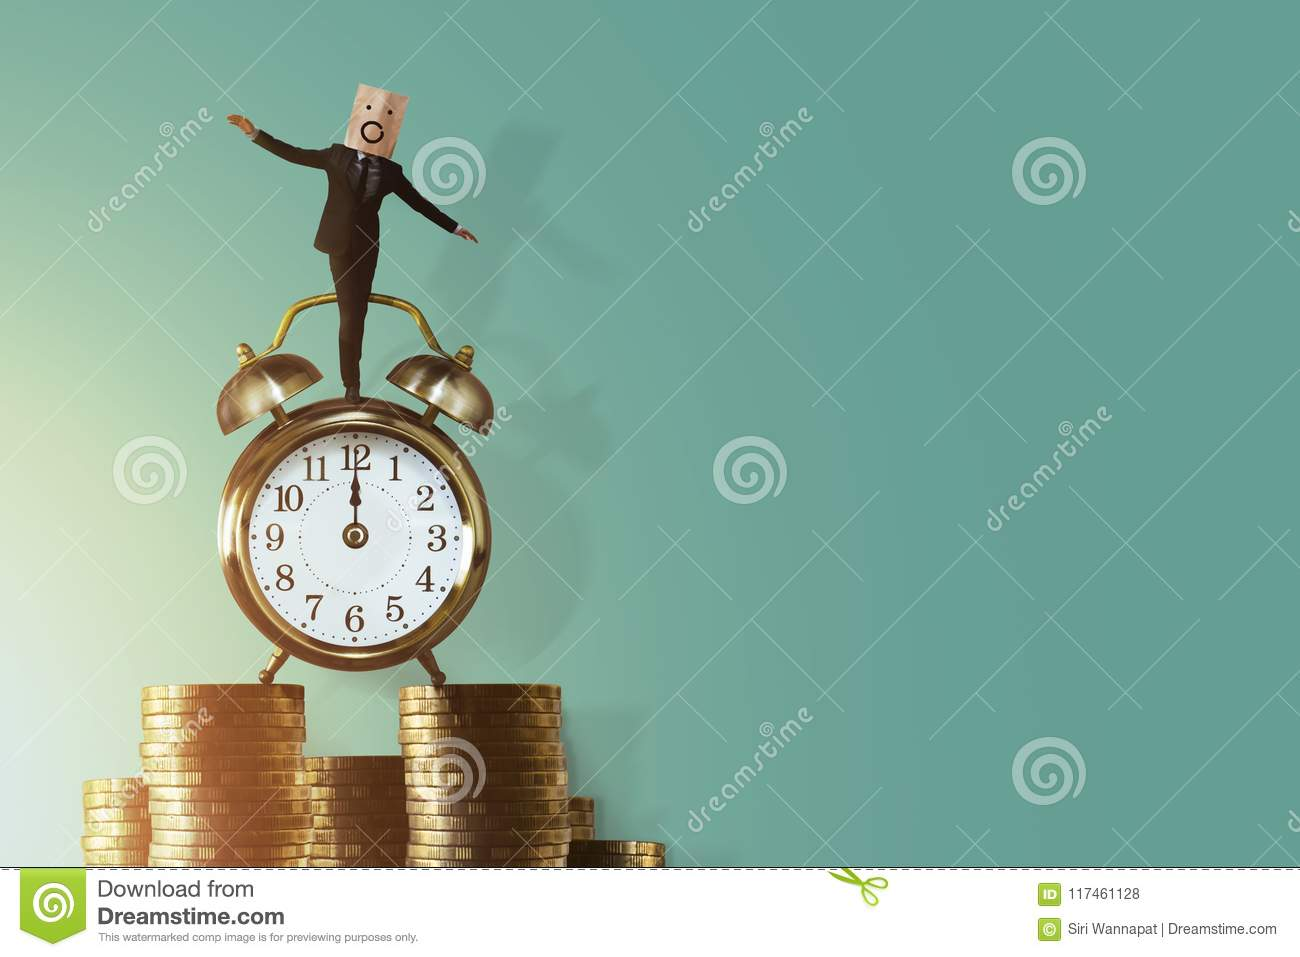 Work Life Balance for Time and Money Concept. Excited Businessman Balancing his body on Vintage Alarm Clock and Stack of Coin. Fa